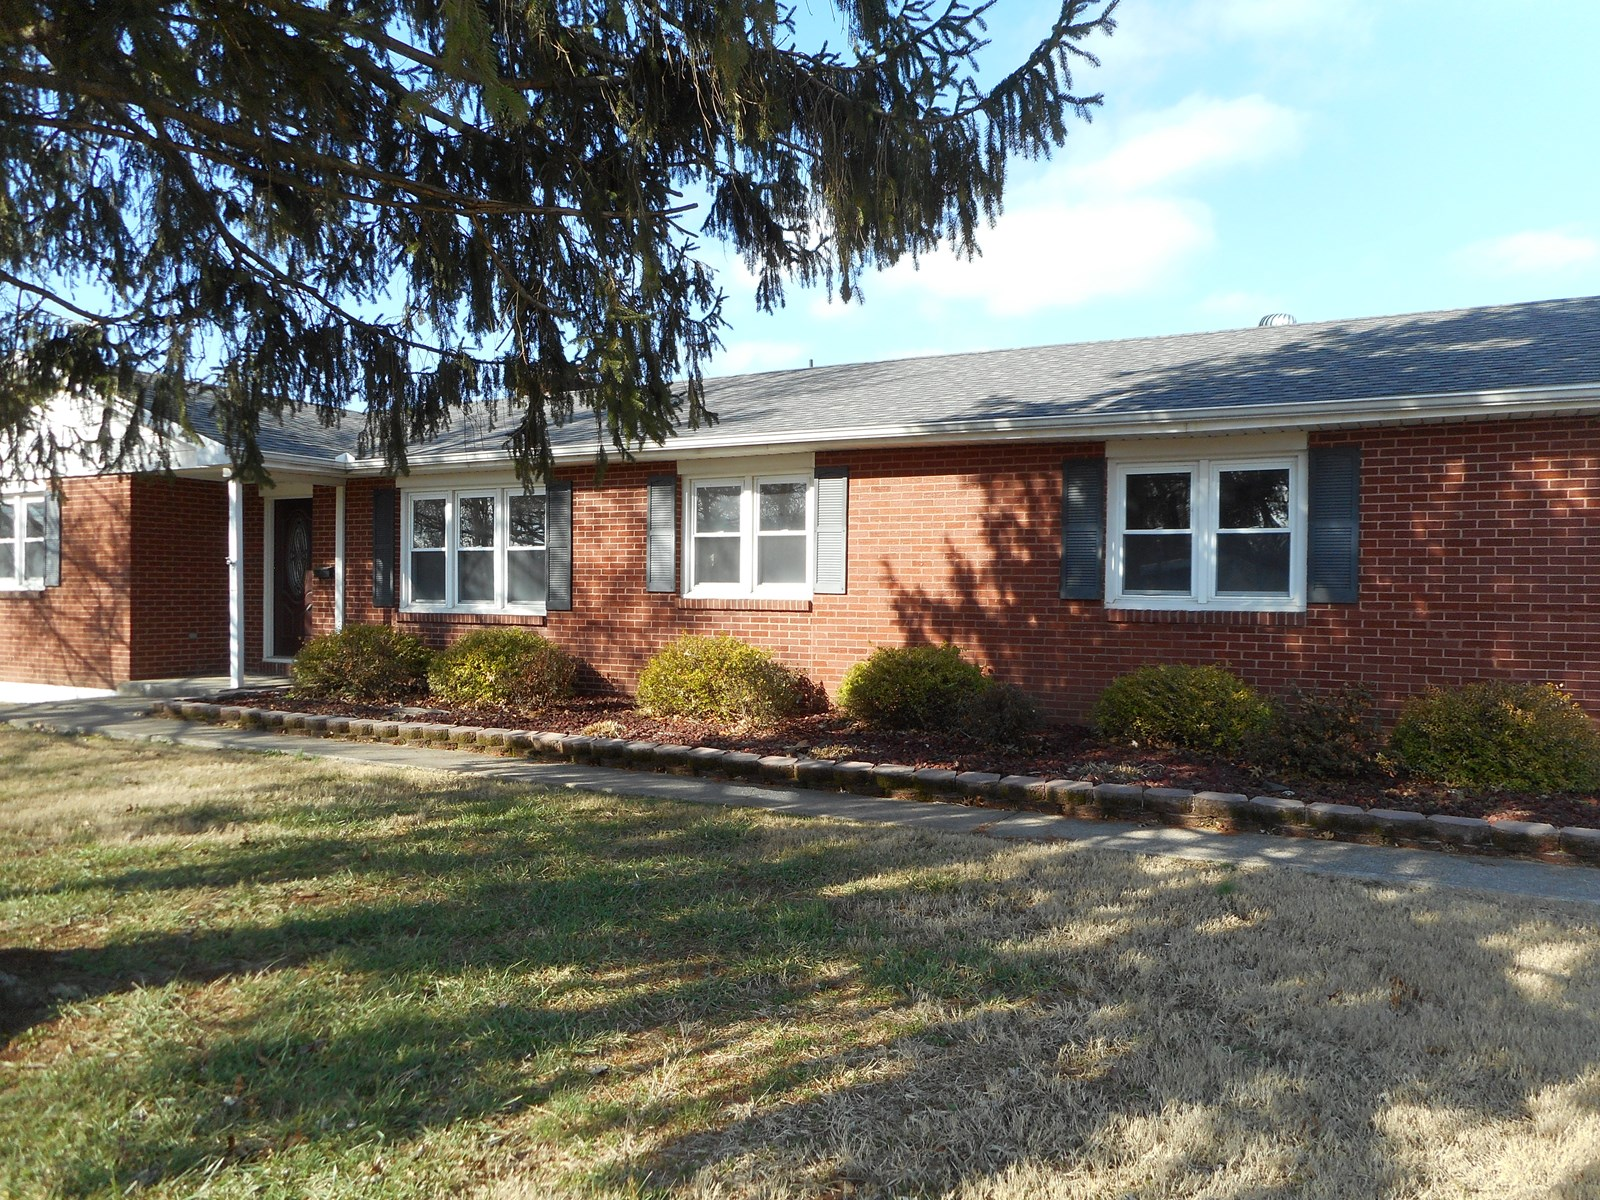 Move In Ready Home For Sale in Scott City, Missouri